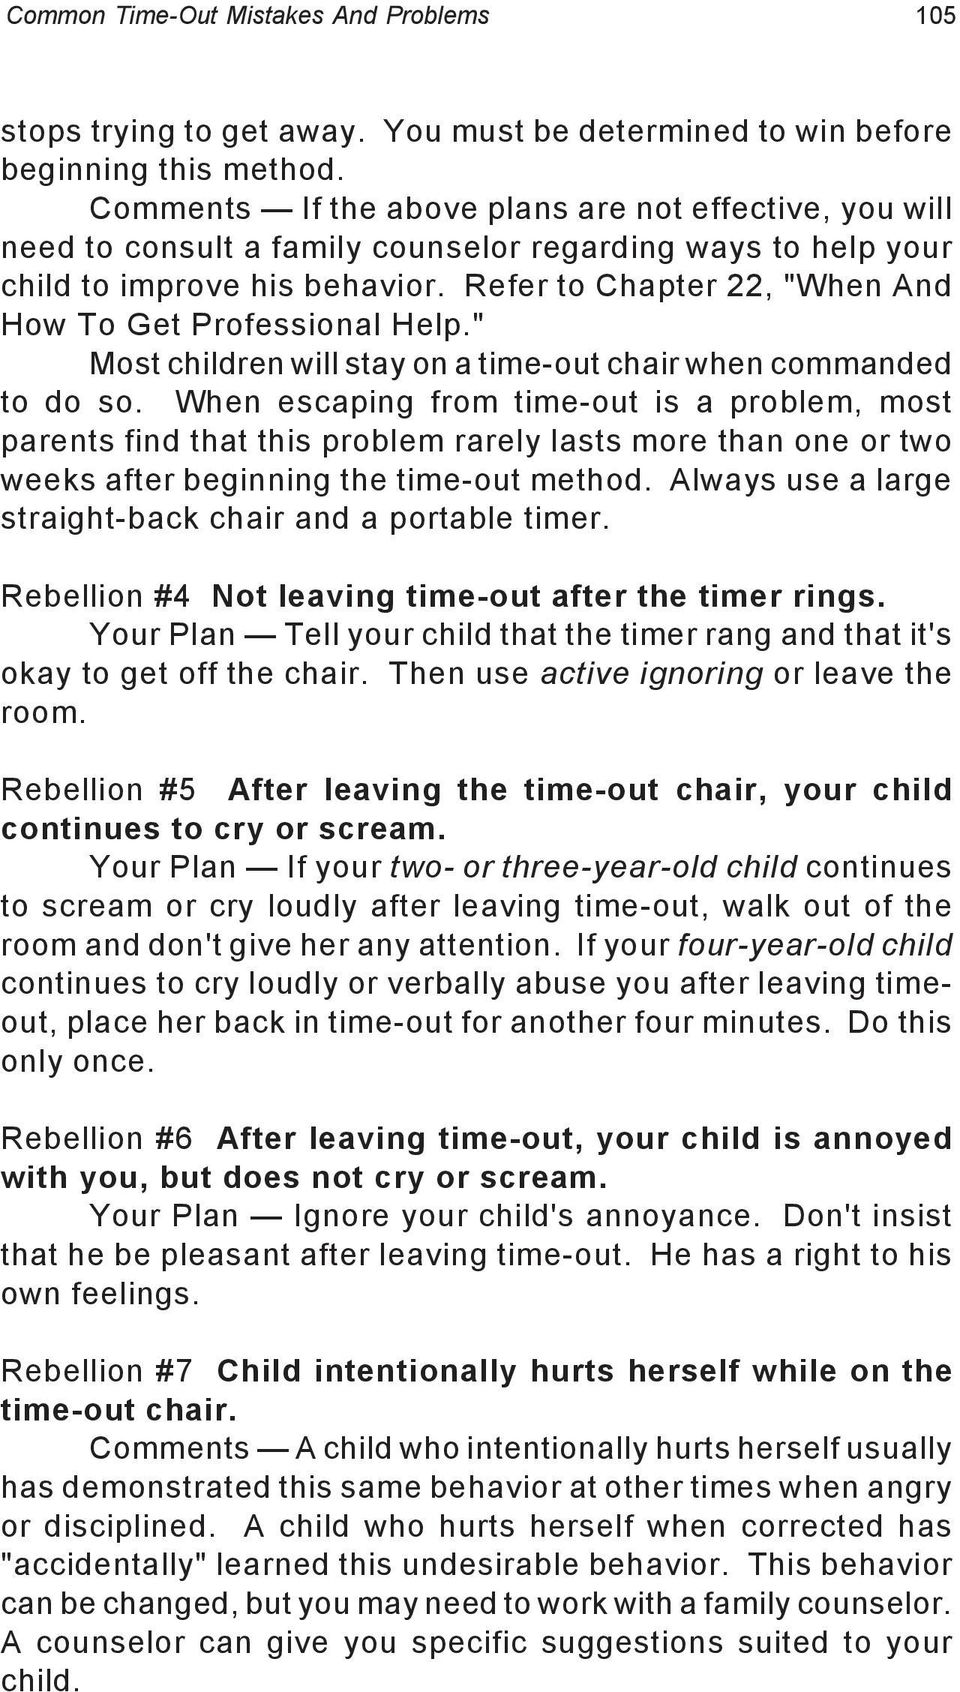 "Refer to Chapter 22, ""When And How To Get Professional Help."" Most children will stay on a time-out chair when commanded to do so."